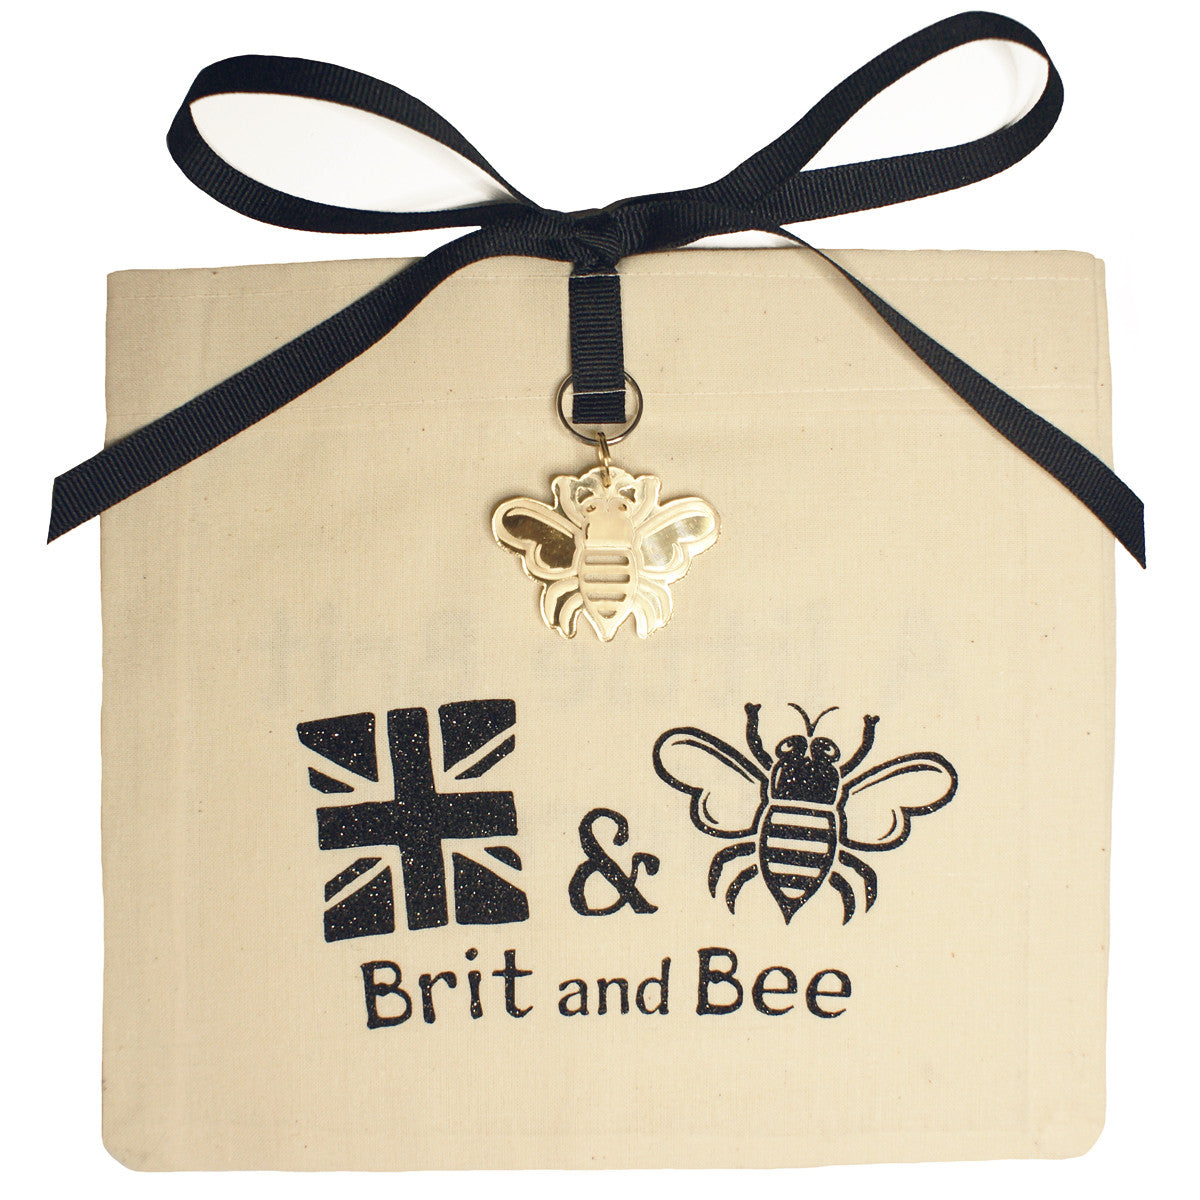 Brit and Bee Sorority Logo Ornament - Kappa Alpha Theta